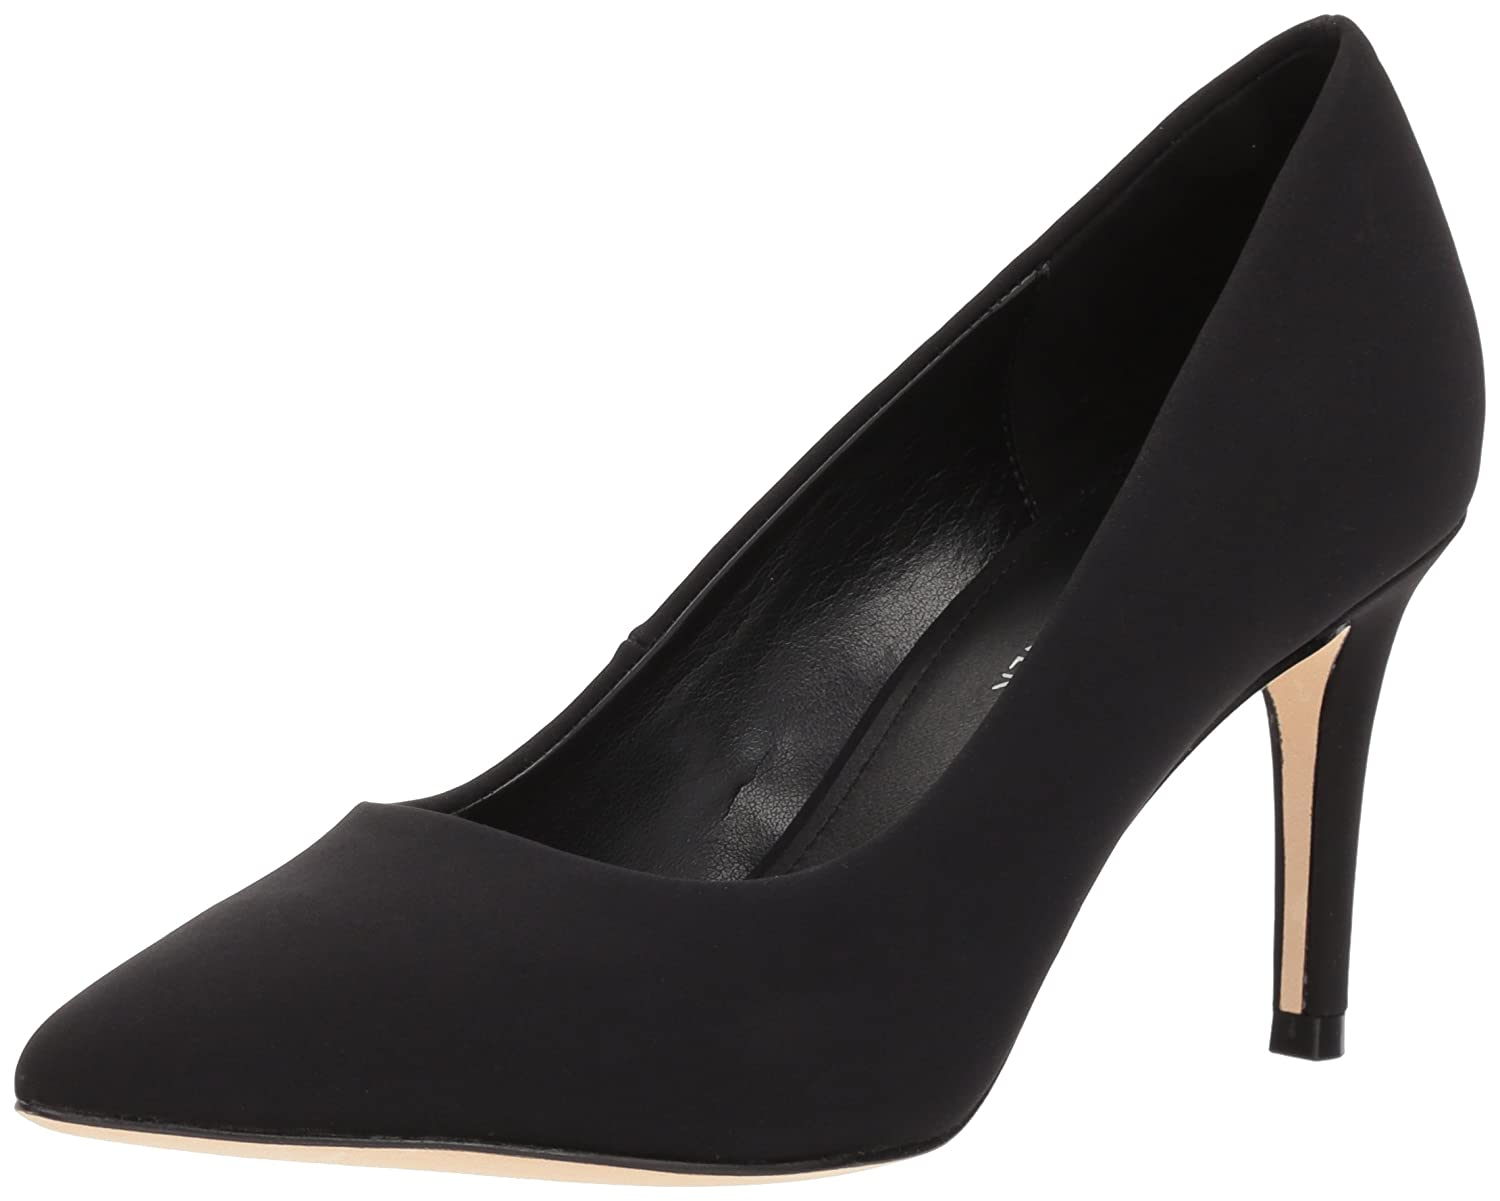 Donald J Pliner Women's Ibby Pump B071KNBB9V 10 B(M) US|Black